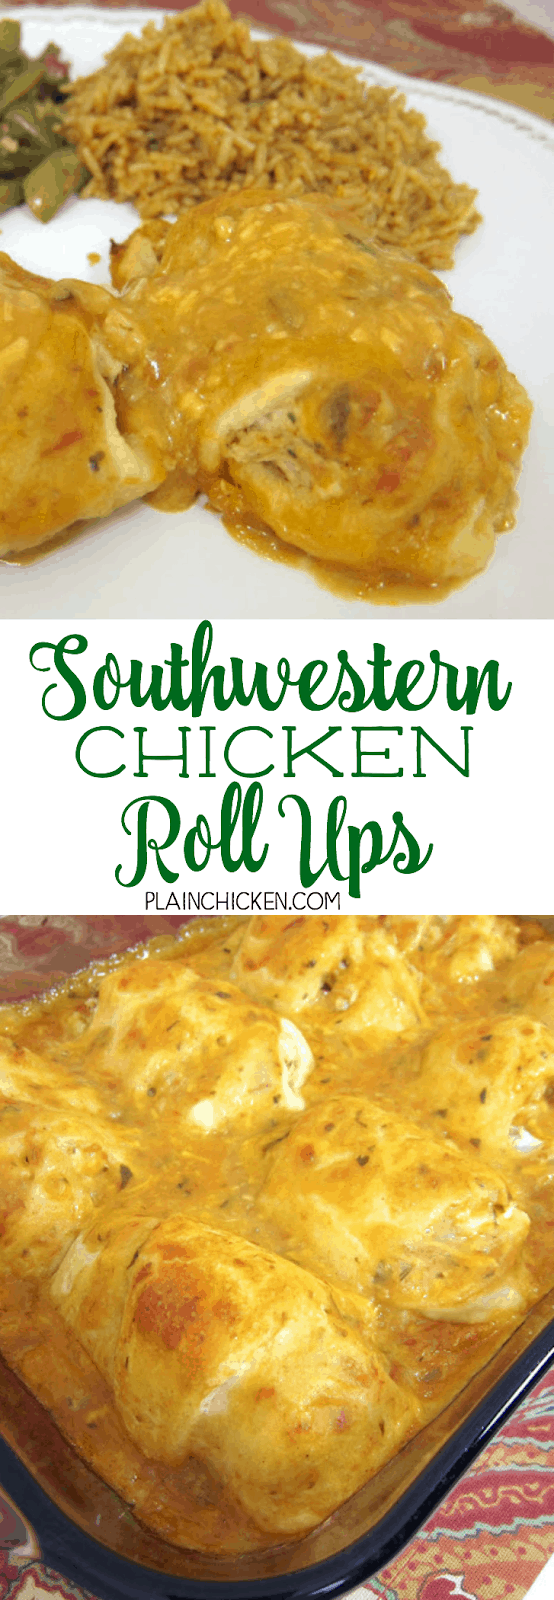 Southwestern Chicken Roll Ups - crescent rolls stuffed with chicken, cream cheese and taco seasoning topped with a mixture of chicken soup, salsa and cheese. CRAZY good! We make these once a month. Everyone loves this easy Mexican casserole! Ready in 30 minutes!